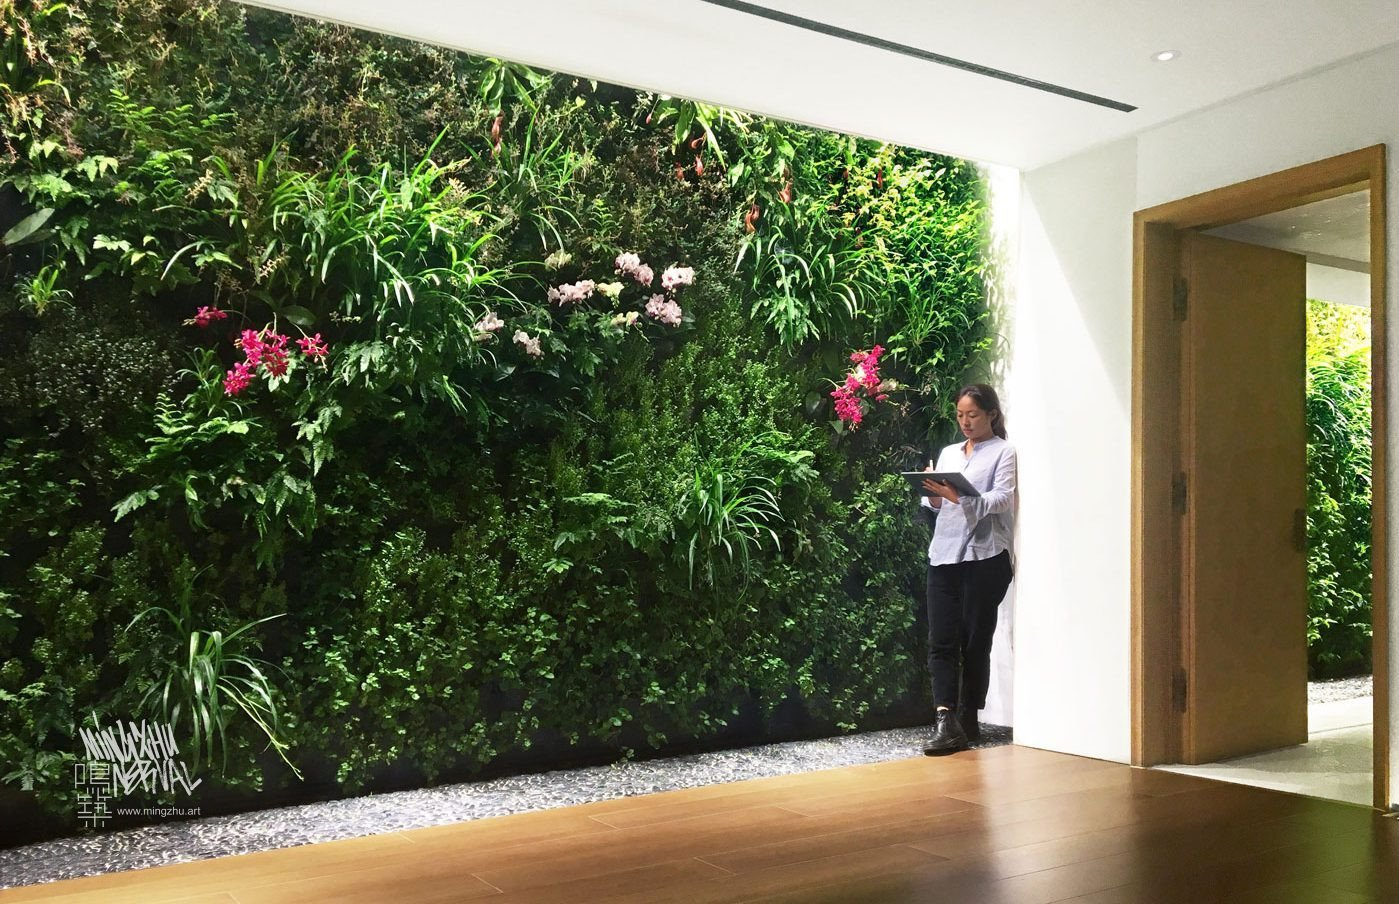 Mingzhu Nerval vertical living wall experts created the garden design for this luxury home villa in Hong Kong, 2016